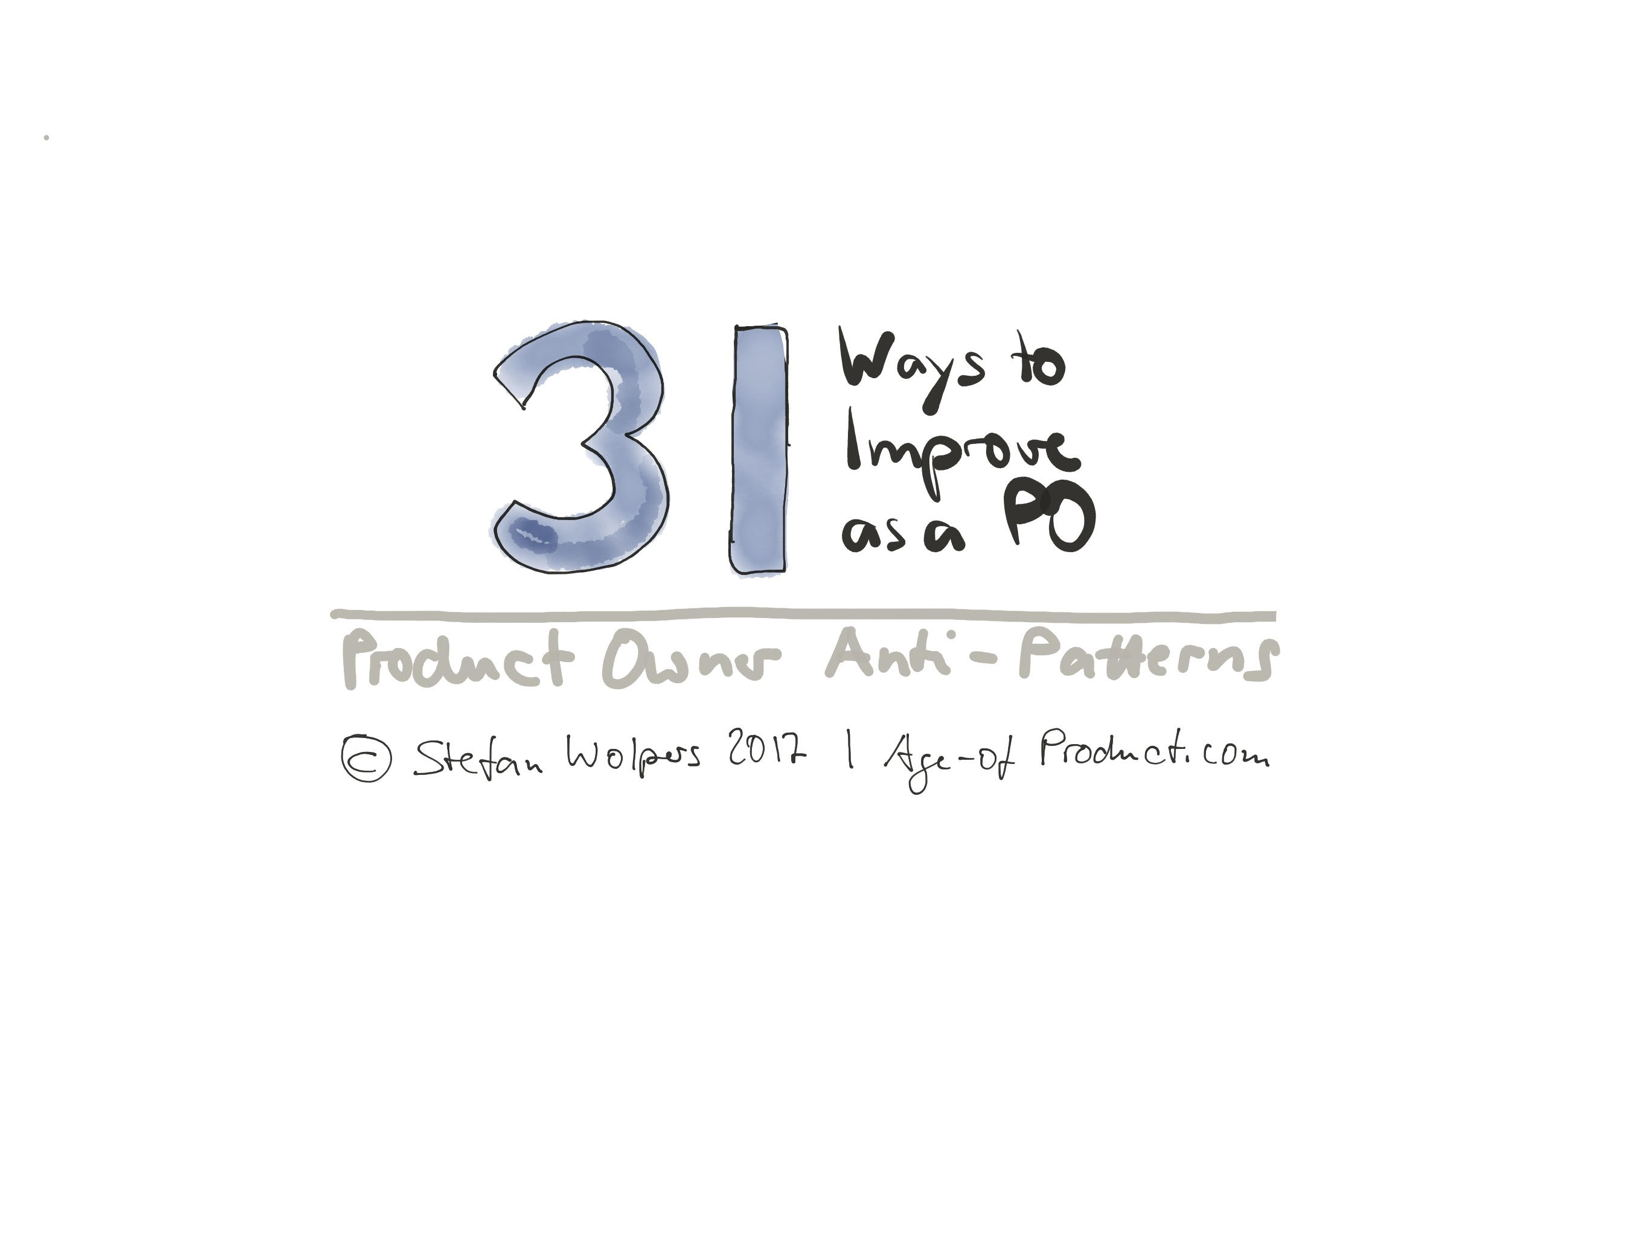 Product Owner Anti-Patterns — 31+2 Ways to Improve as a PO